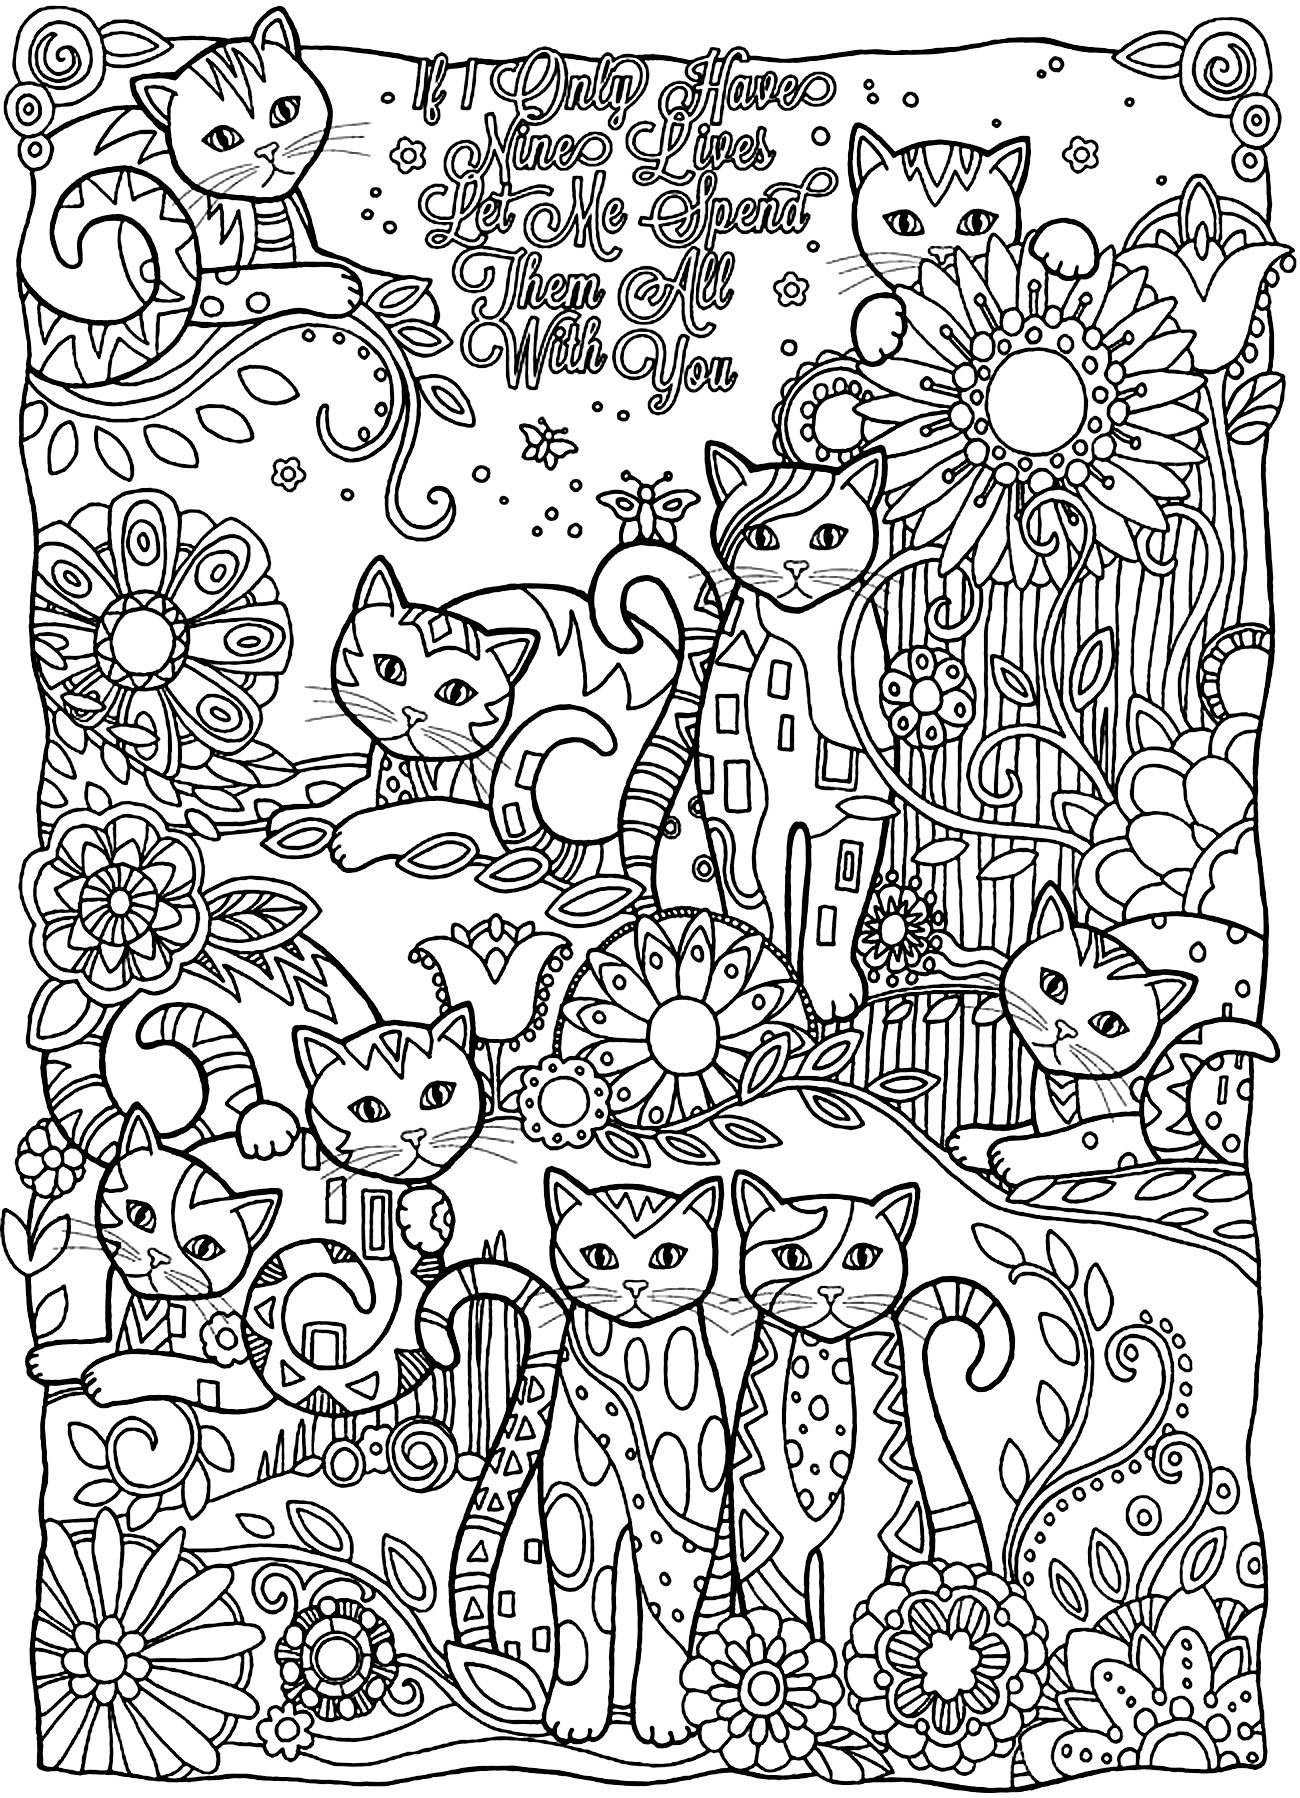 Pablo Picasso Coloring Pages to Print | Free Coloring Sheets